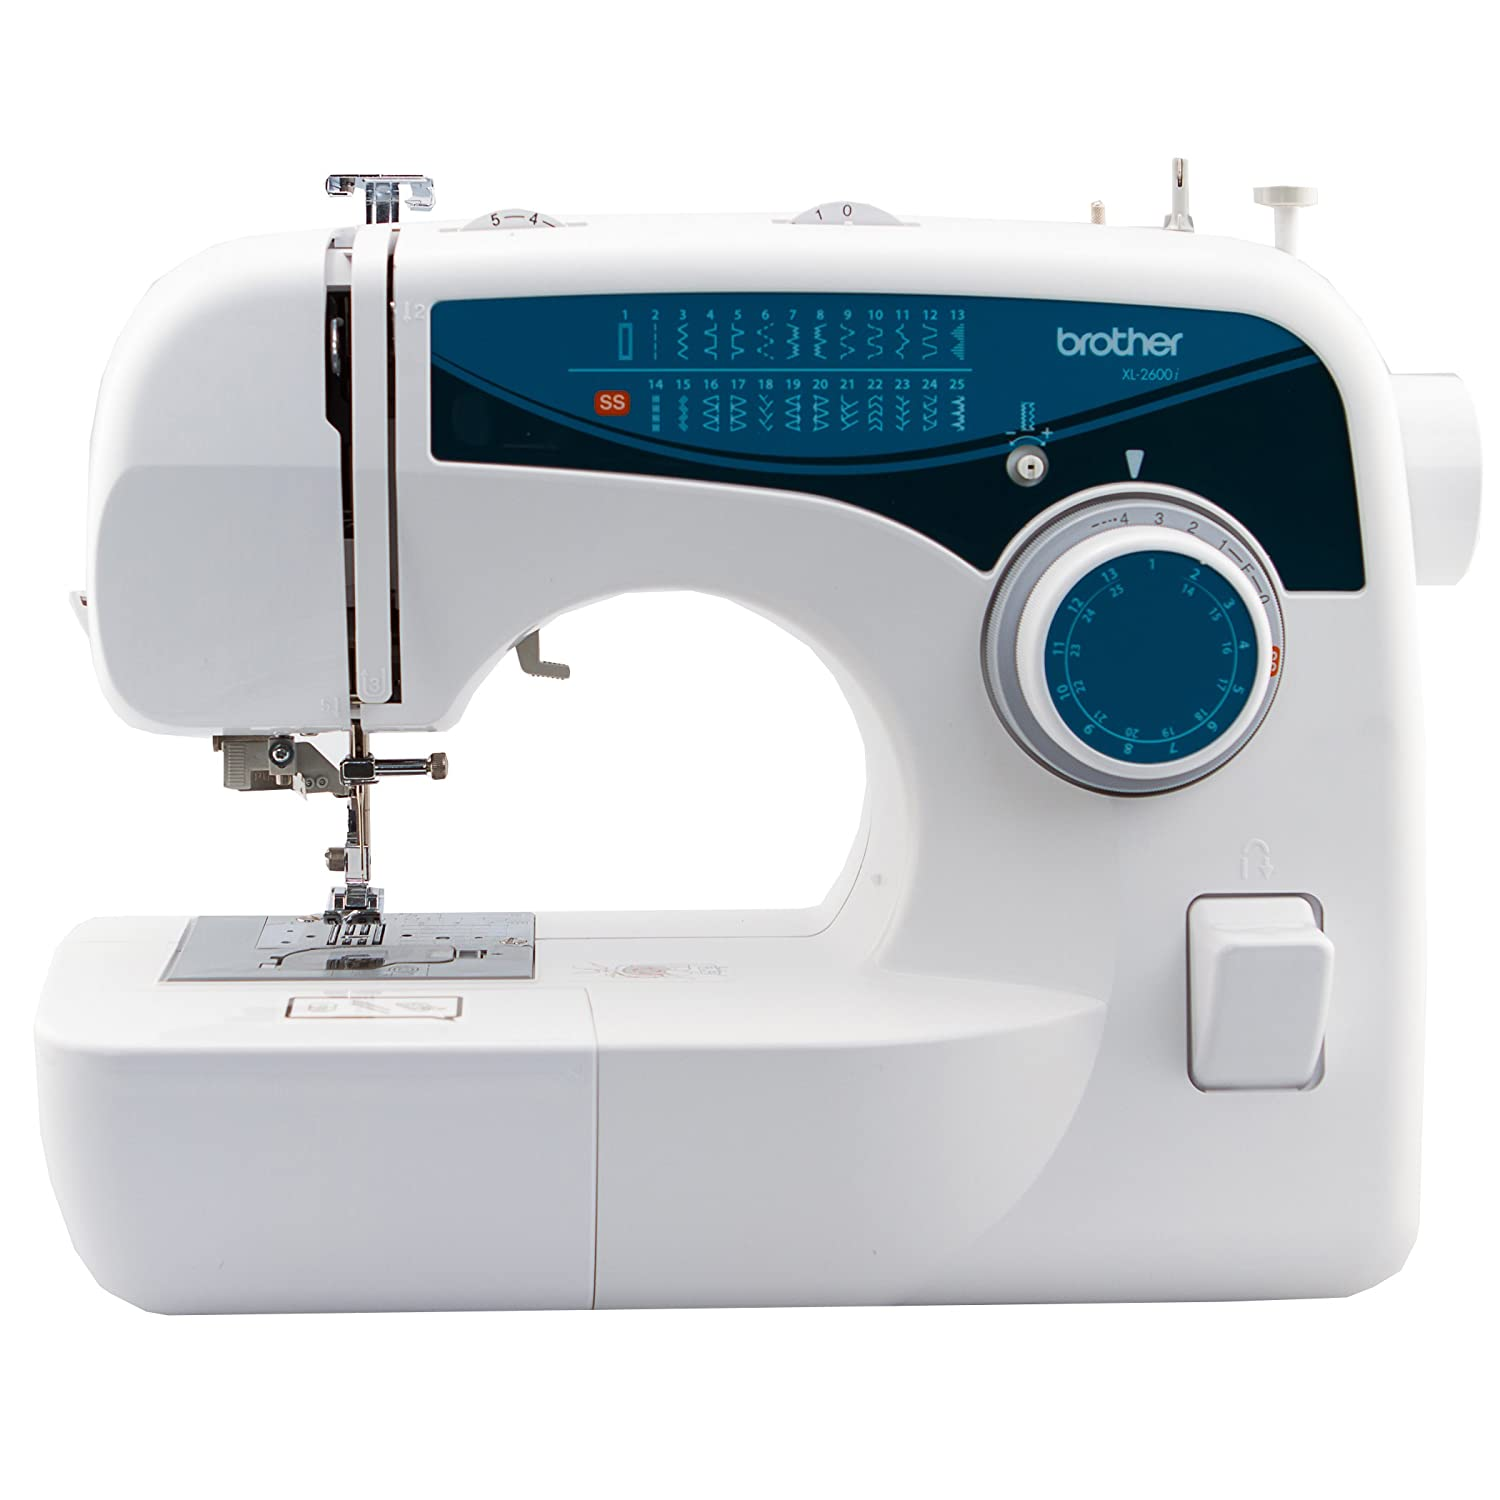 Brother XL2600I Sew Advance